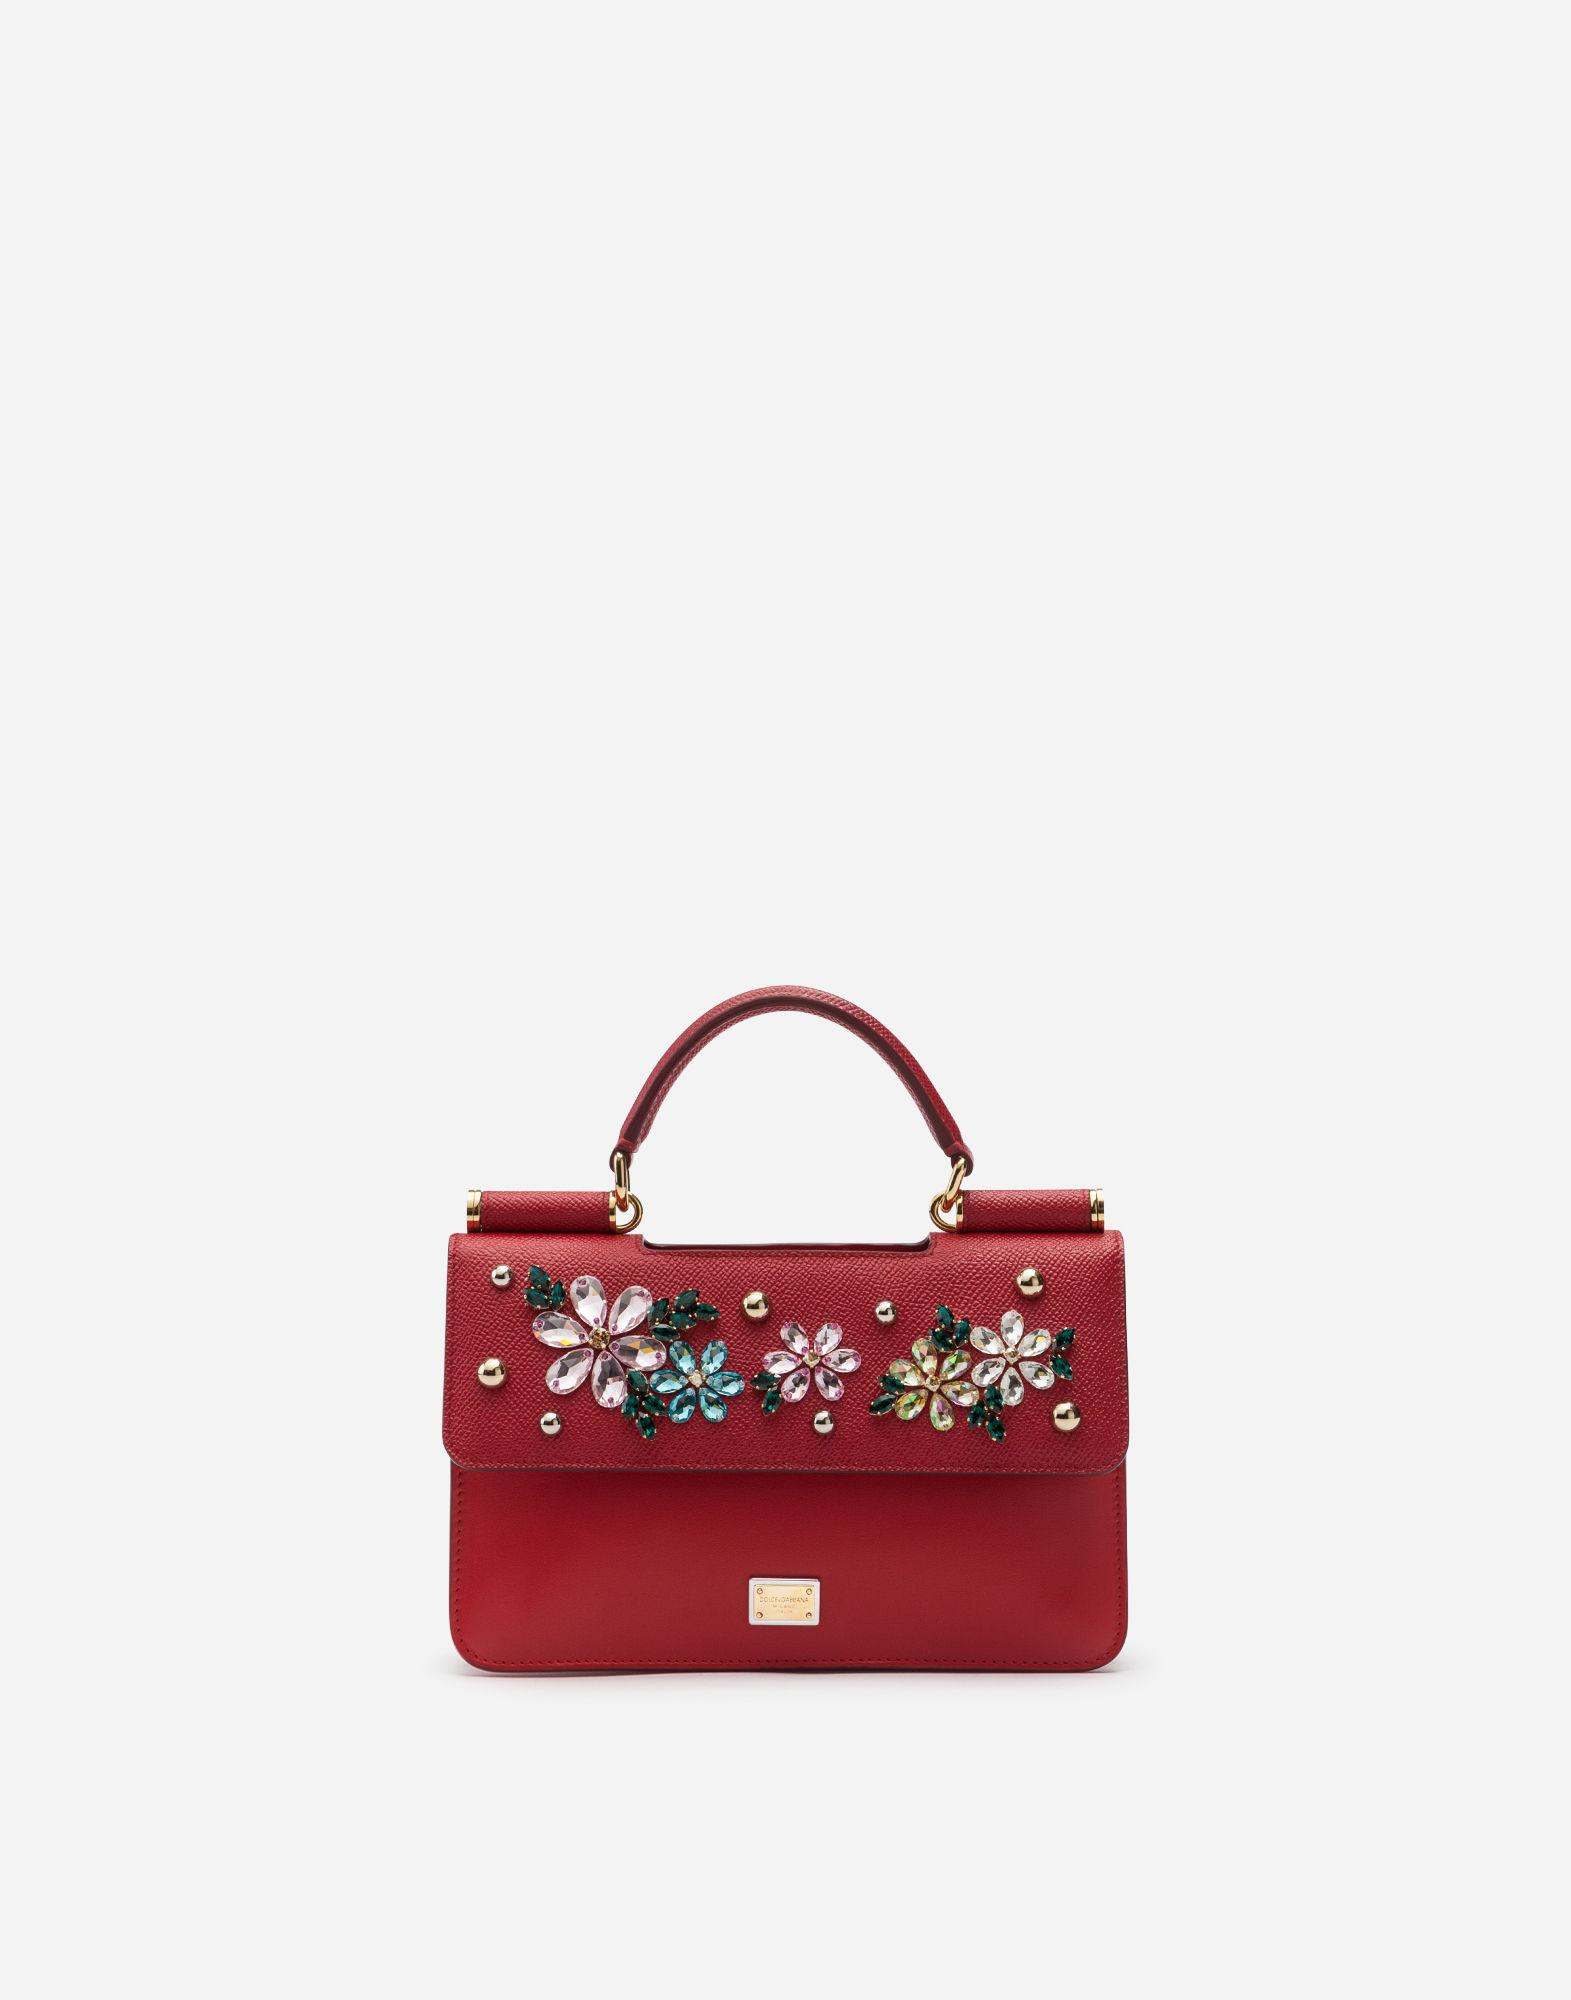 7e90bb29f43 Lyst - Dolce   Gabbana Sicily Mini Bag In Dauphine Calfskin With ...